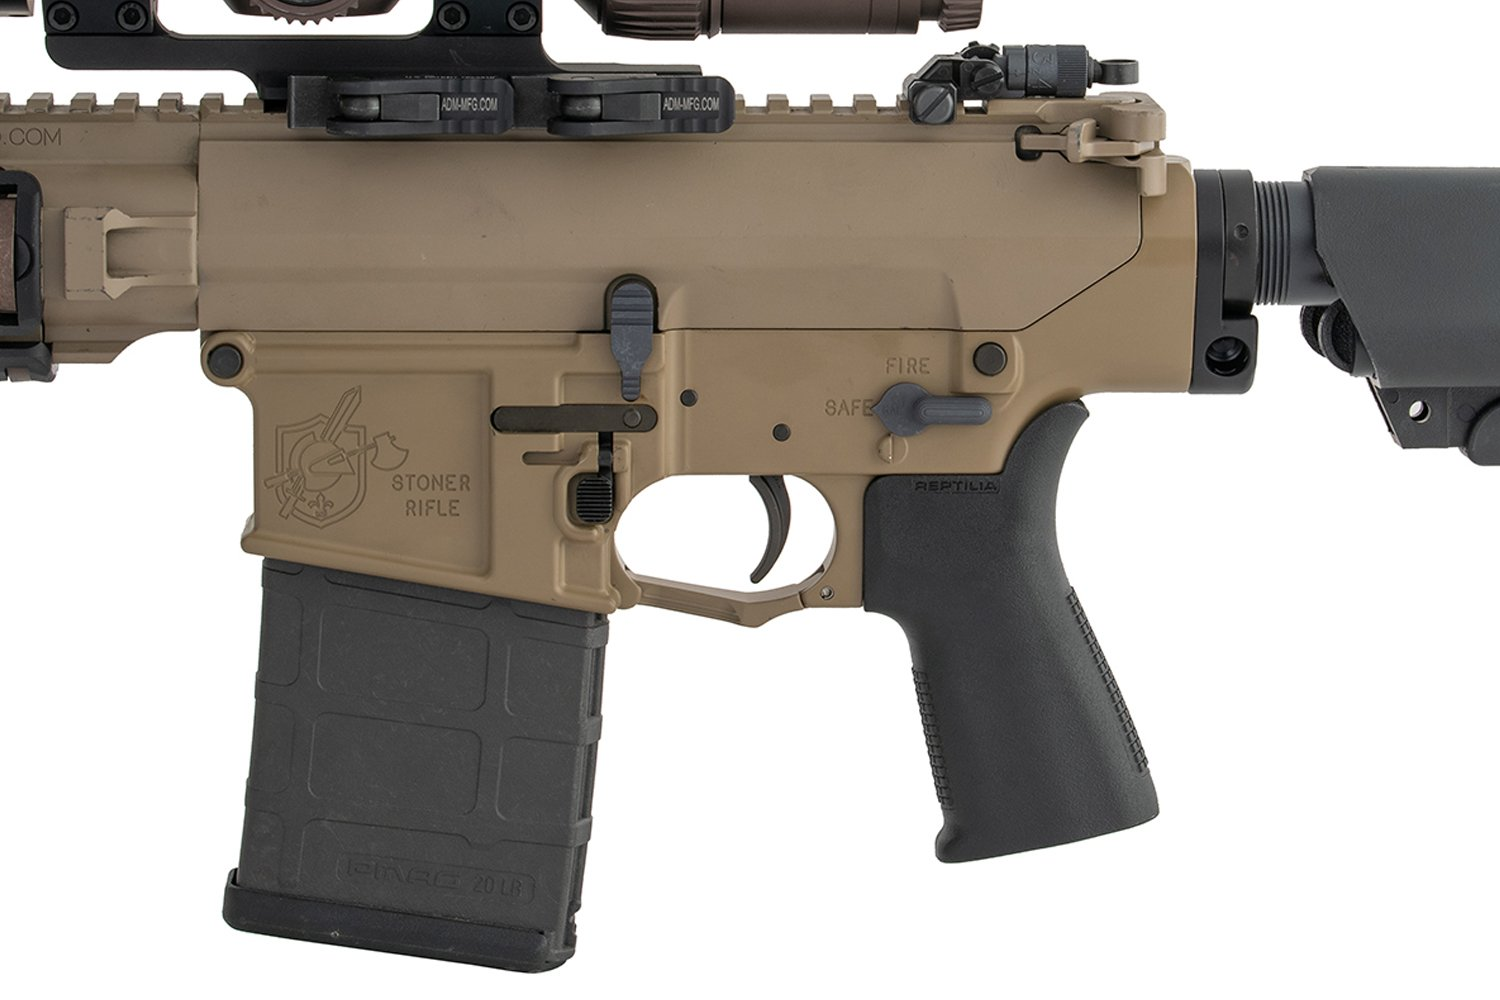 rep-productionphoto-CQG-grip-SR25_1512x